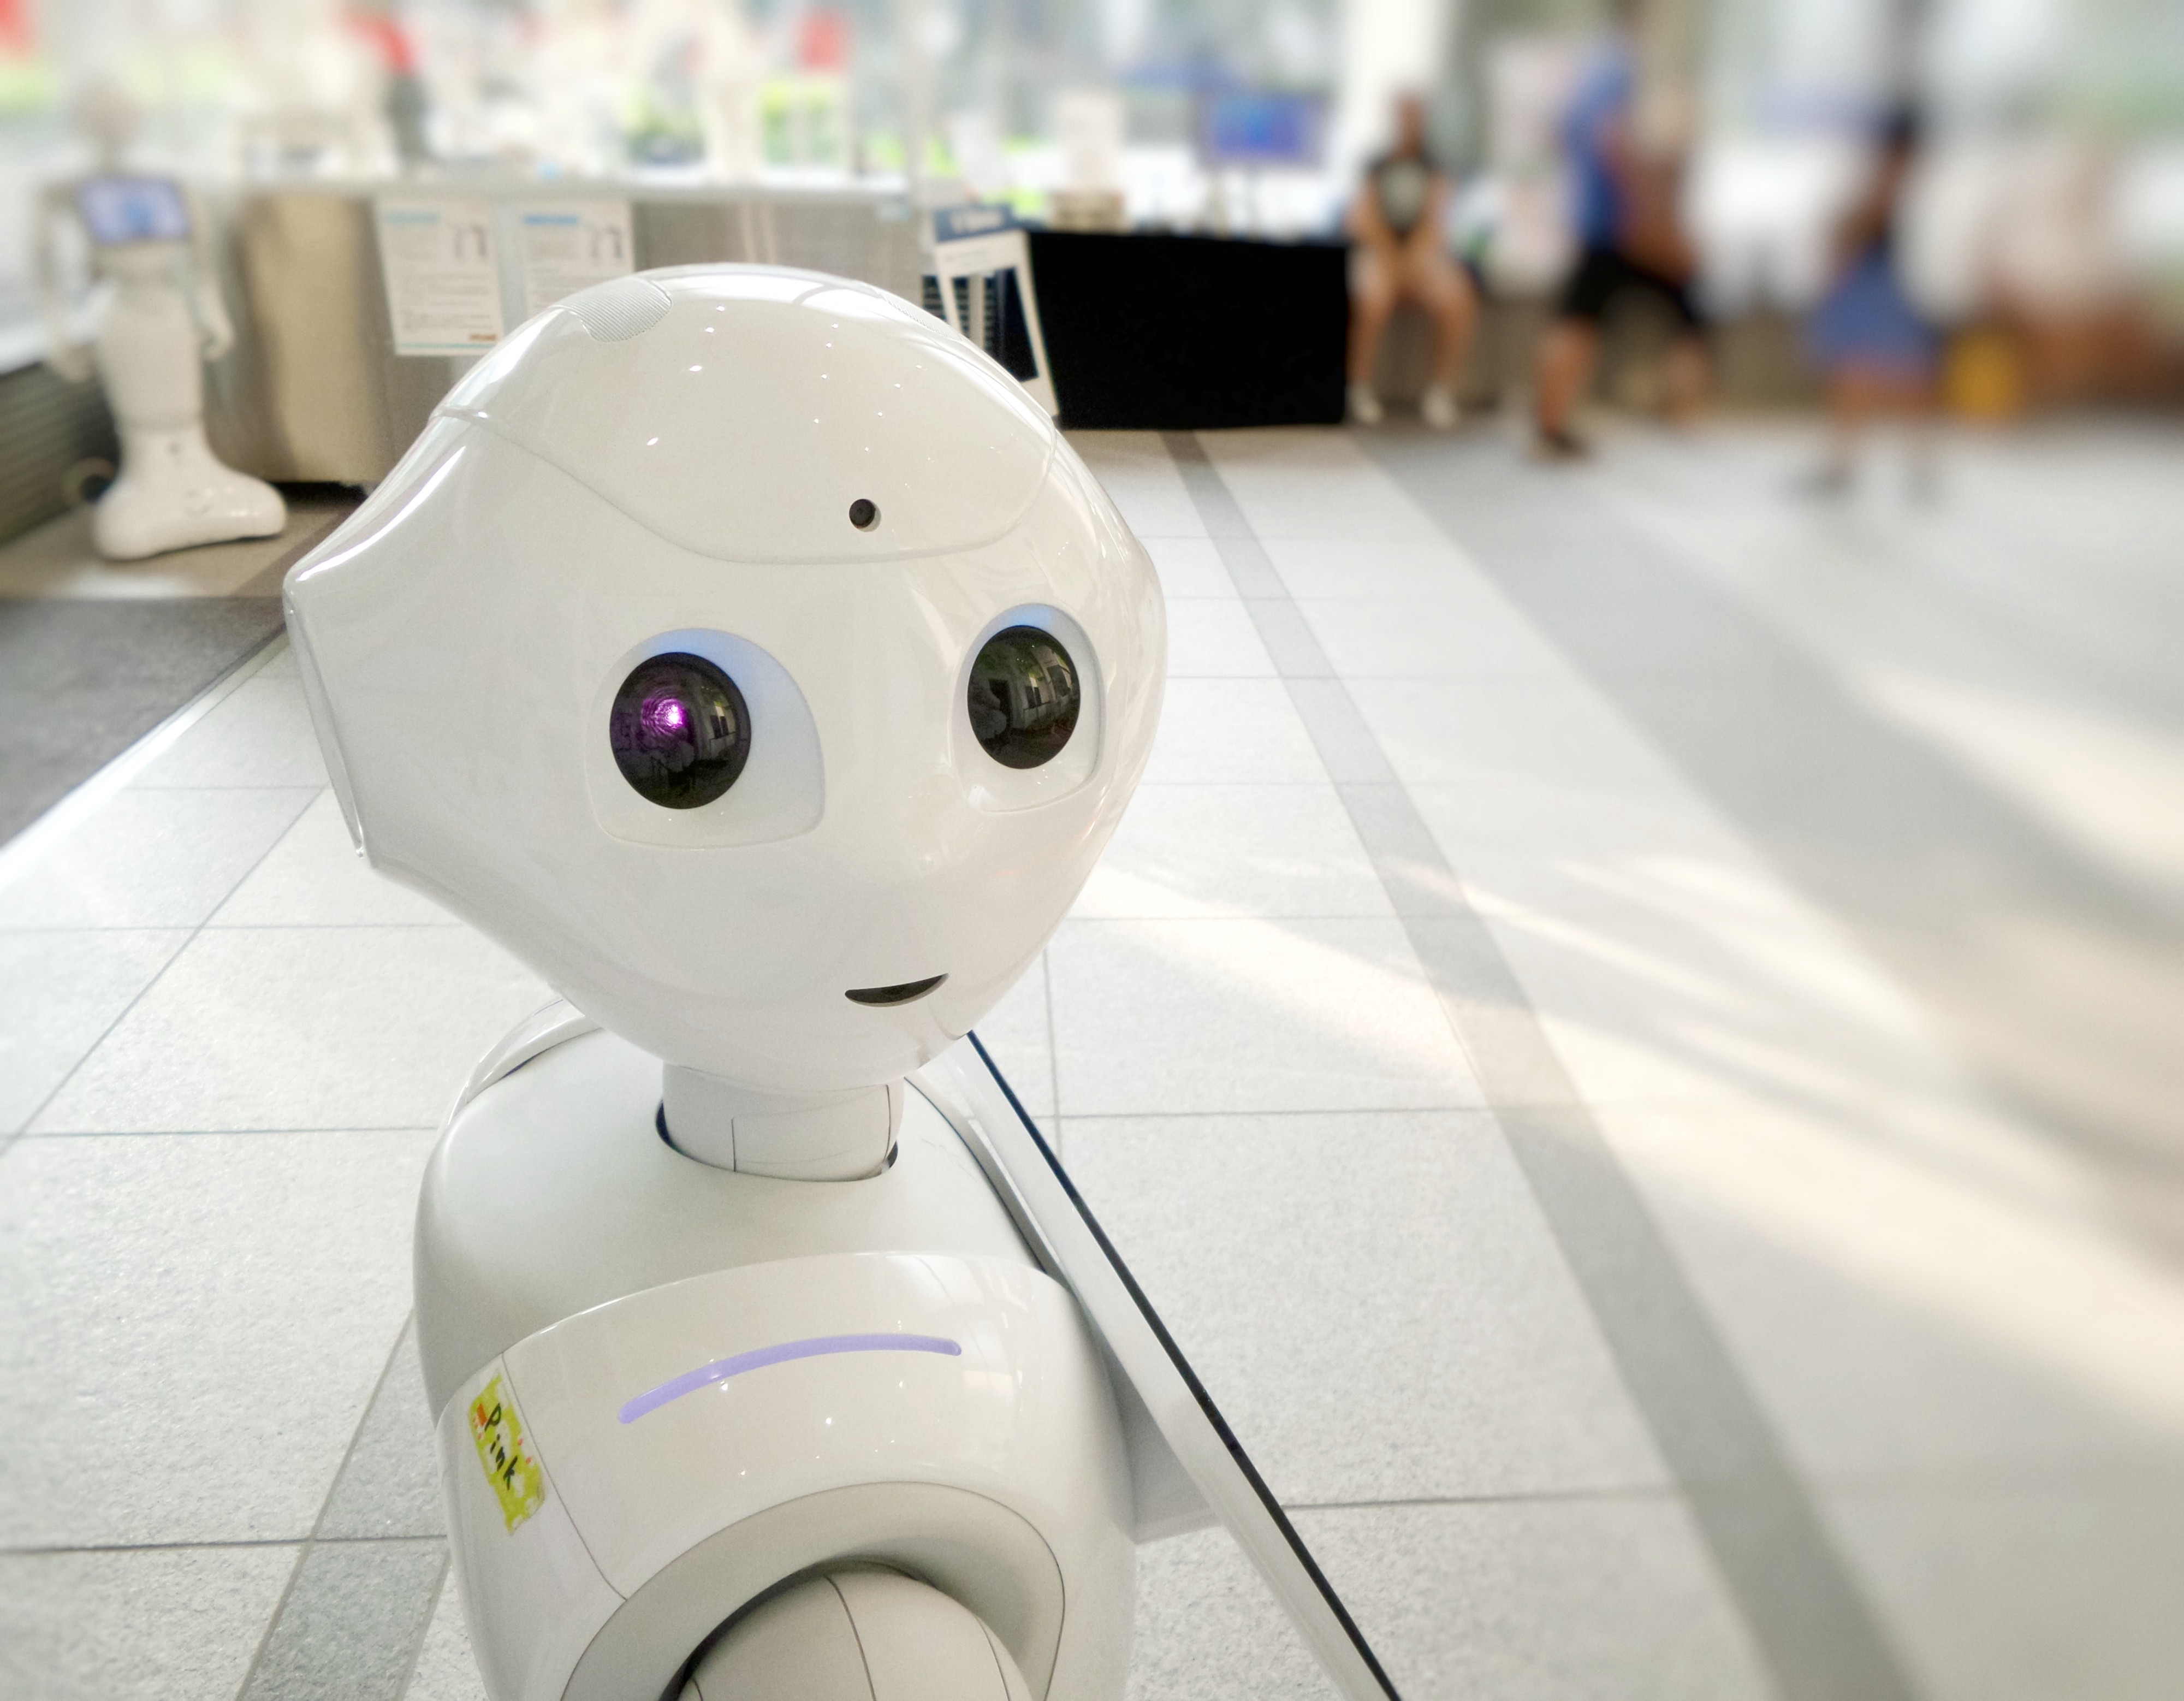 A robot ready to accept commands